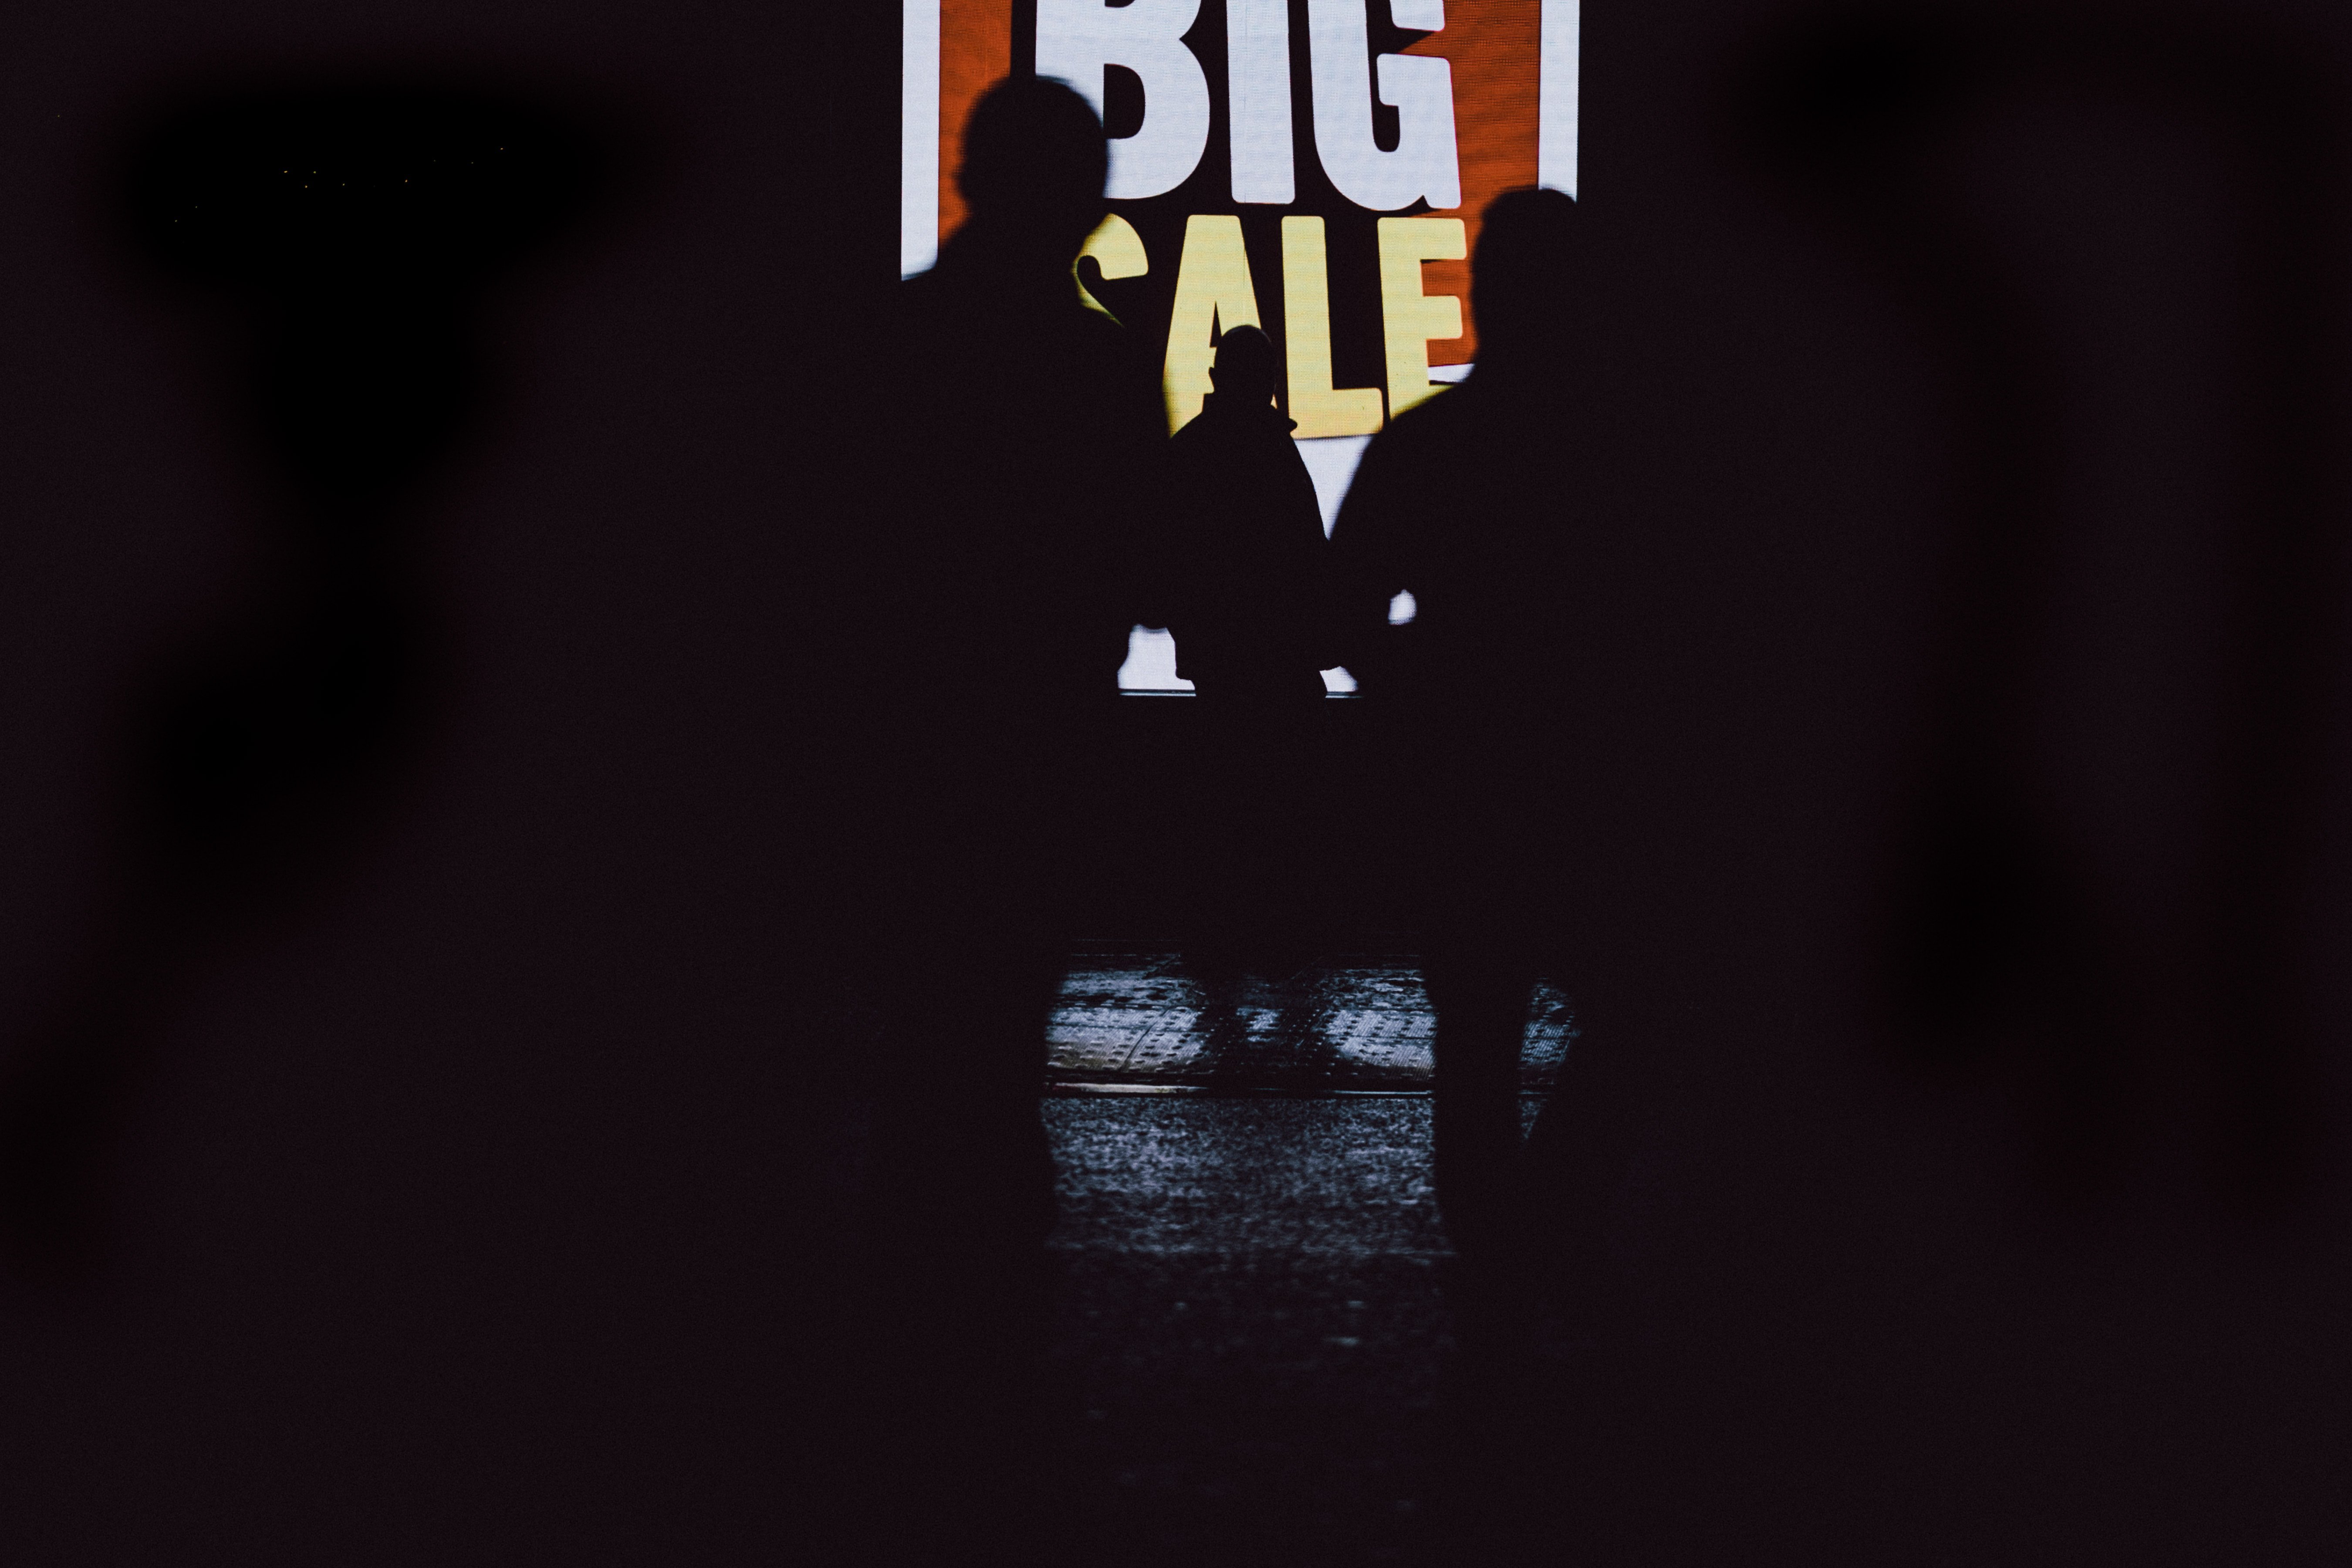 Silhouettes of people in front of a sale sign. | Source: Unsplash